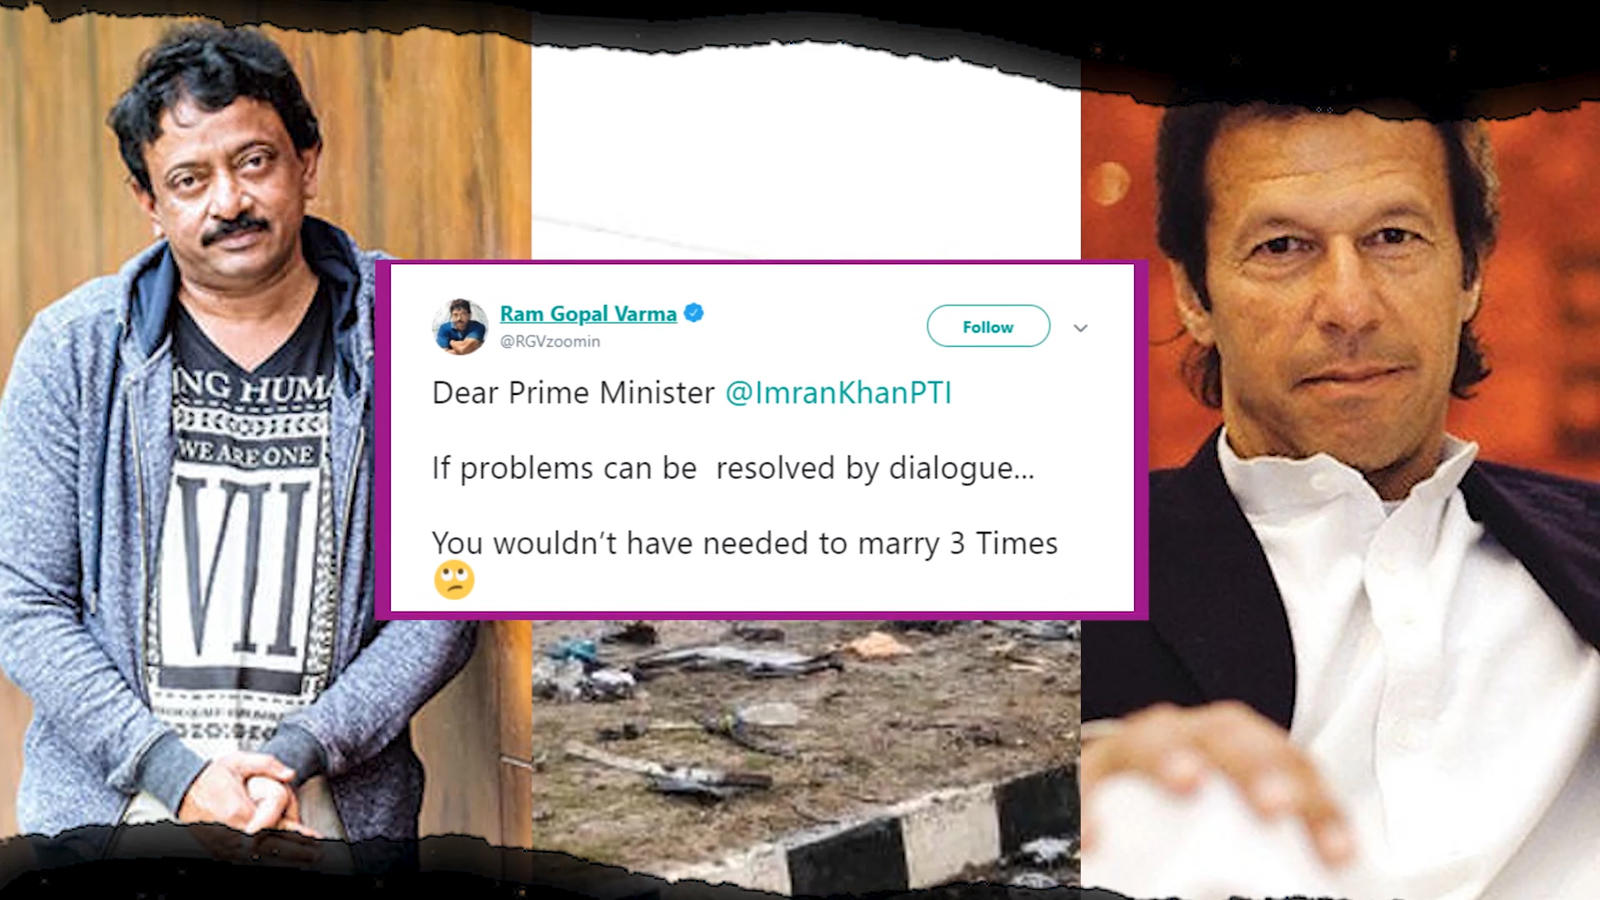 pulwama-terror-attack-ram-gopal-varma-taunts-pakistan-prime-minister-imran-khan-over-his-3-marriages